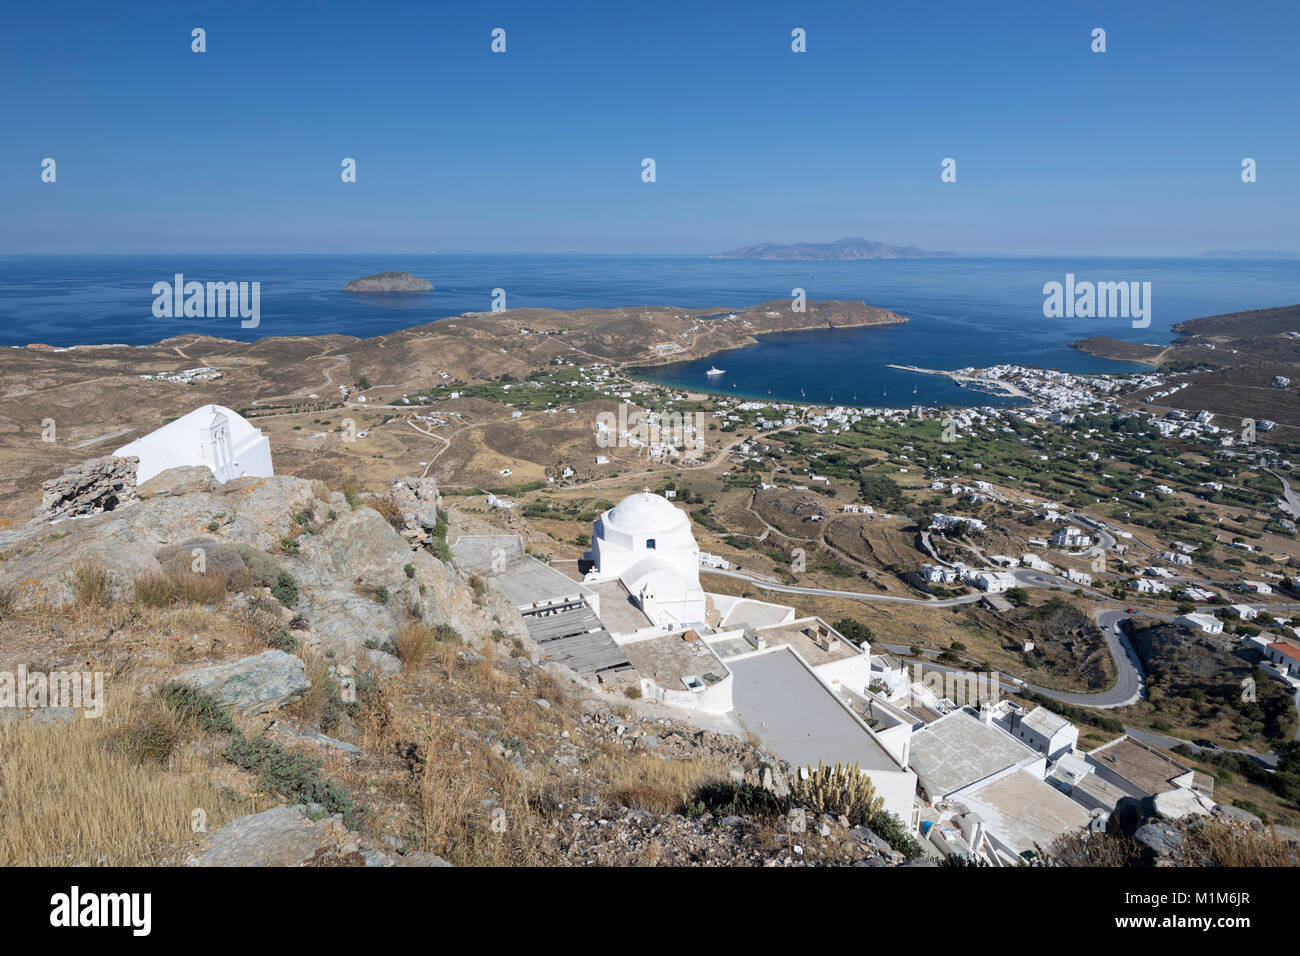 View over Livadi Bay and white Greek Orthodox churches from top of Pano Chora, Serifos, Cyclades, Aegean Sea, Greek - Stock Image